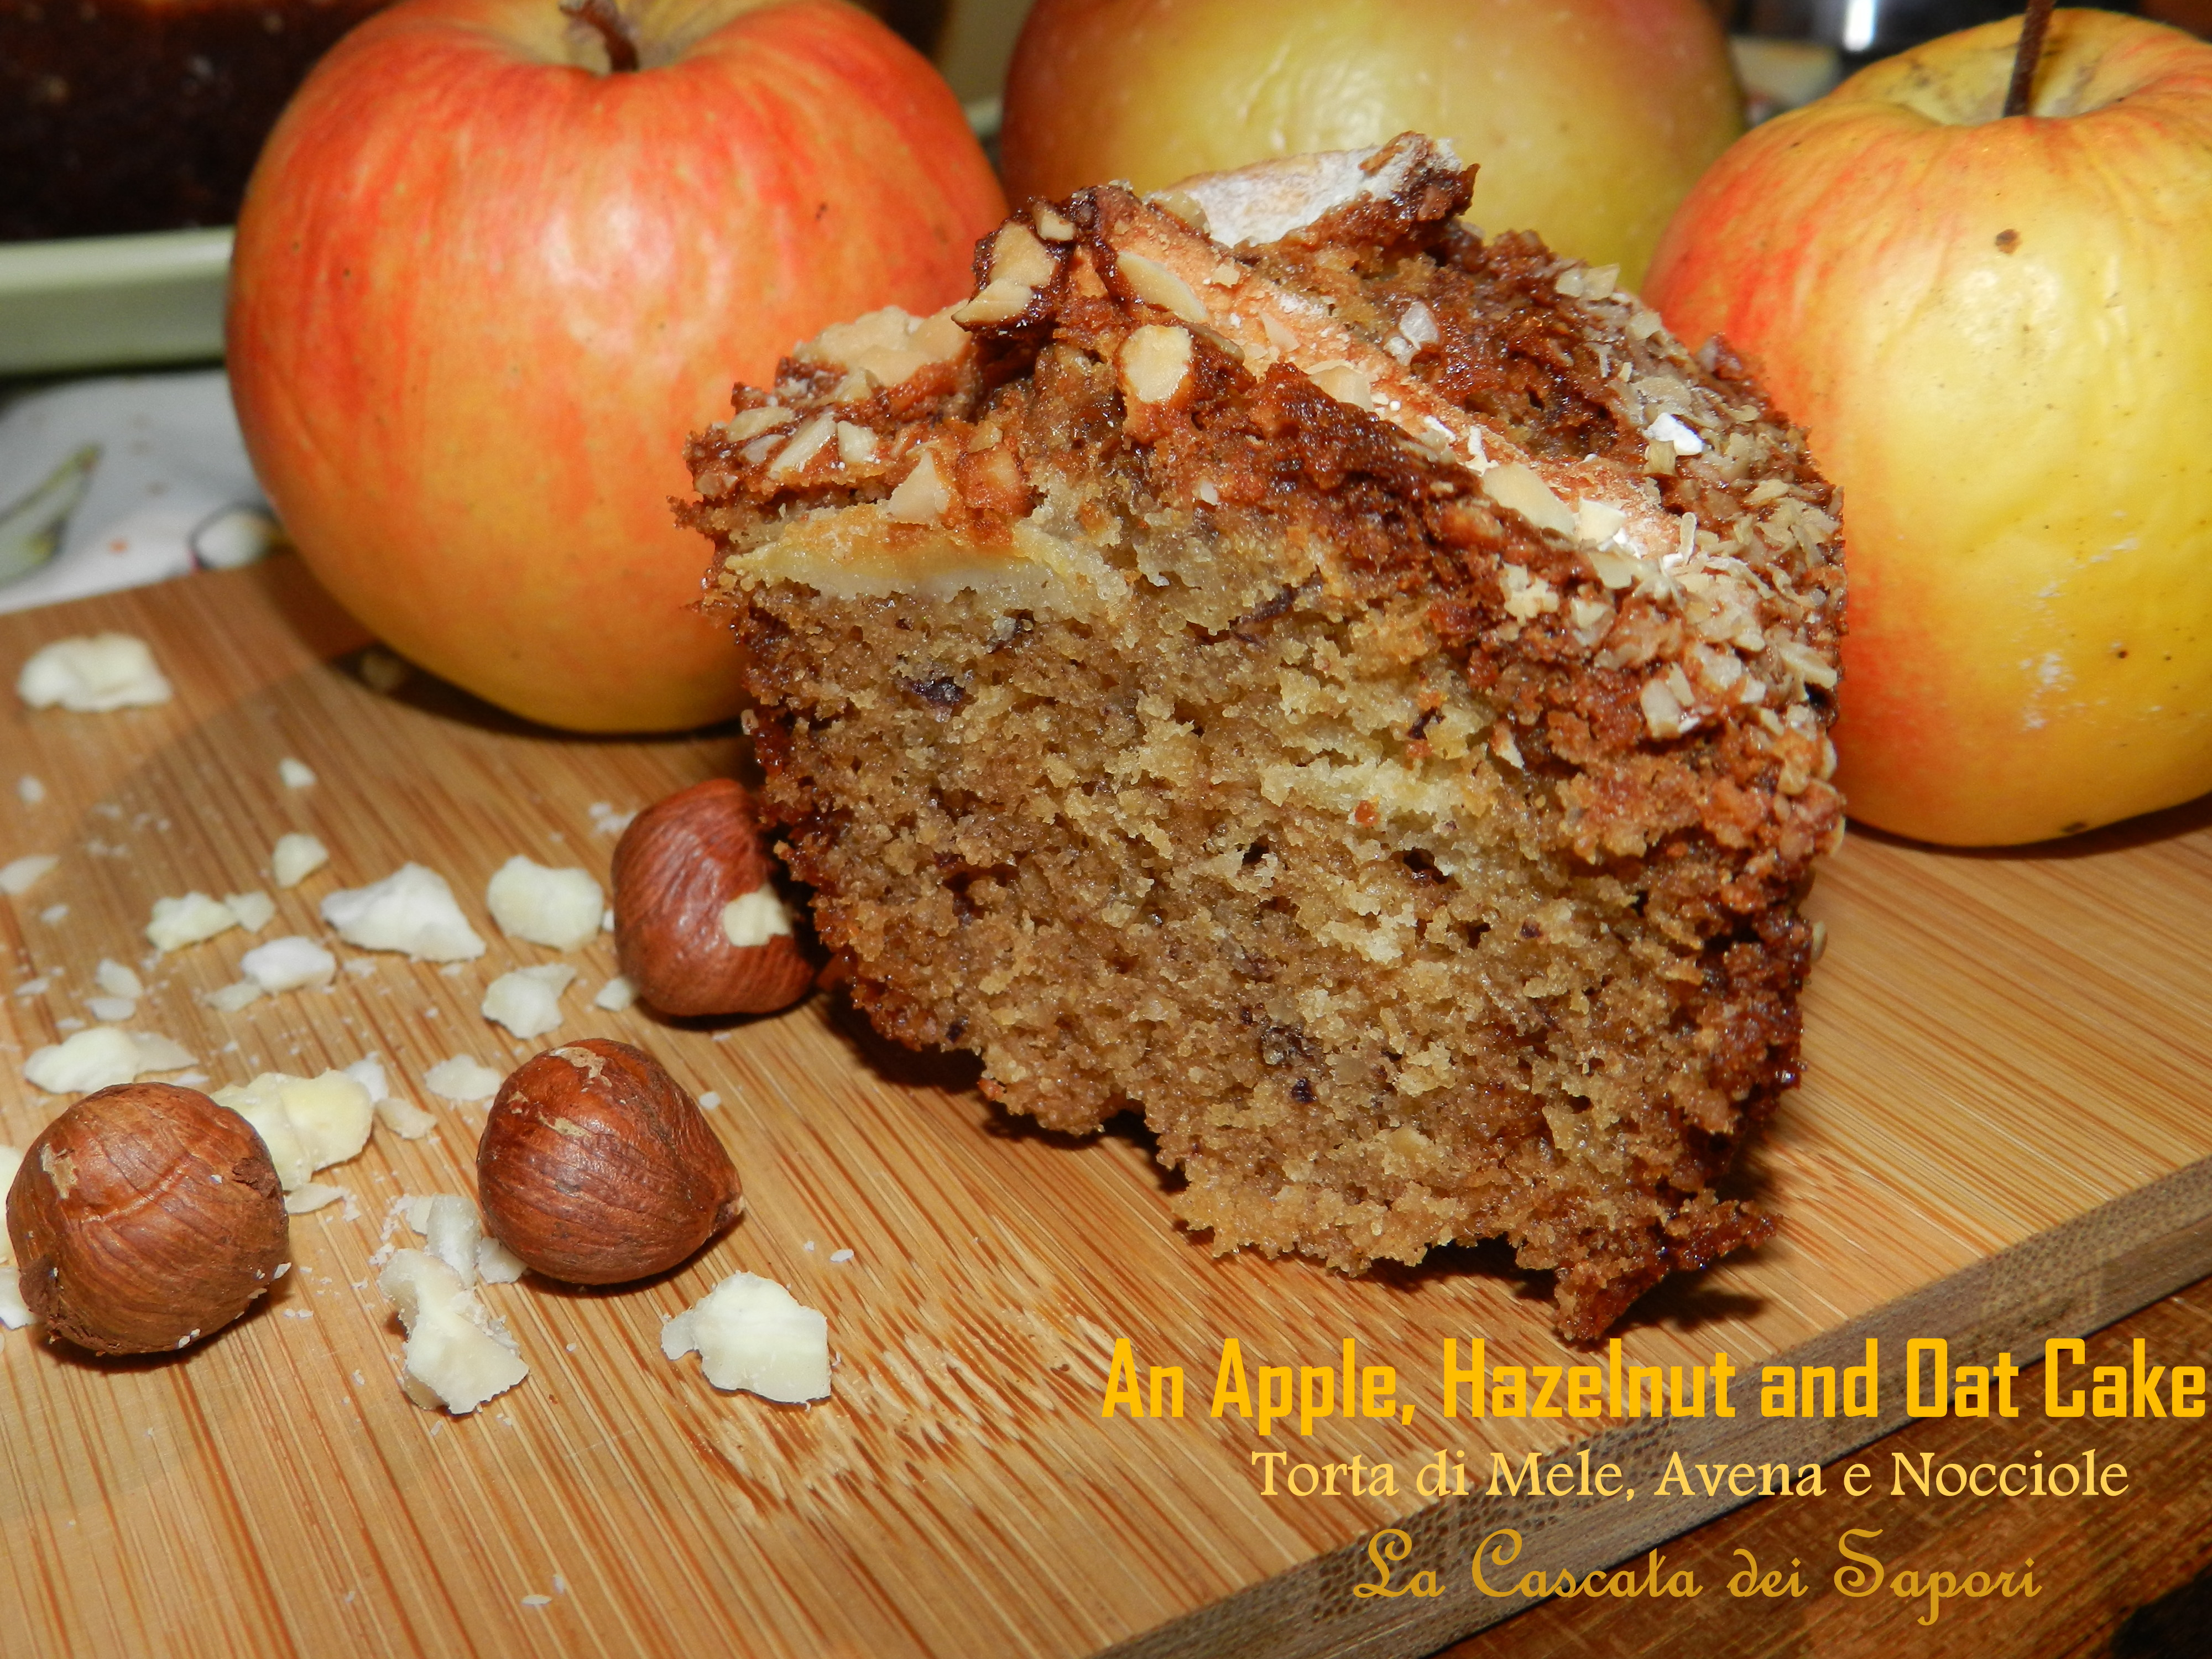 AN APPLE, HAZELNUT AND OAT CAKE TORTA DI MELE, NOCCIOLE E AVENA RE-CAKE2.0